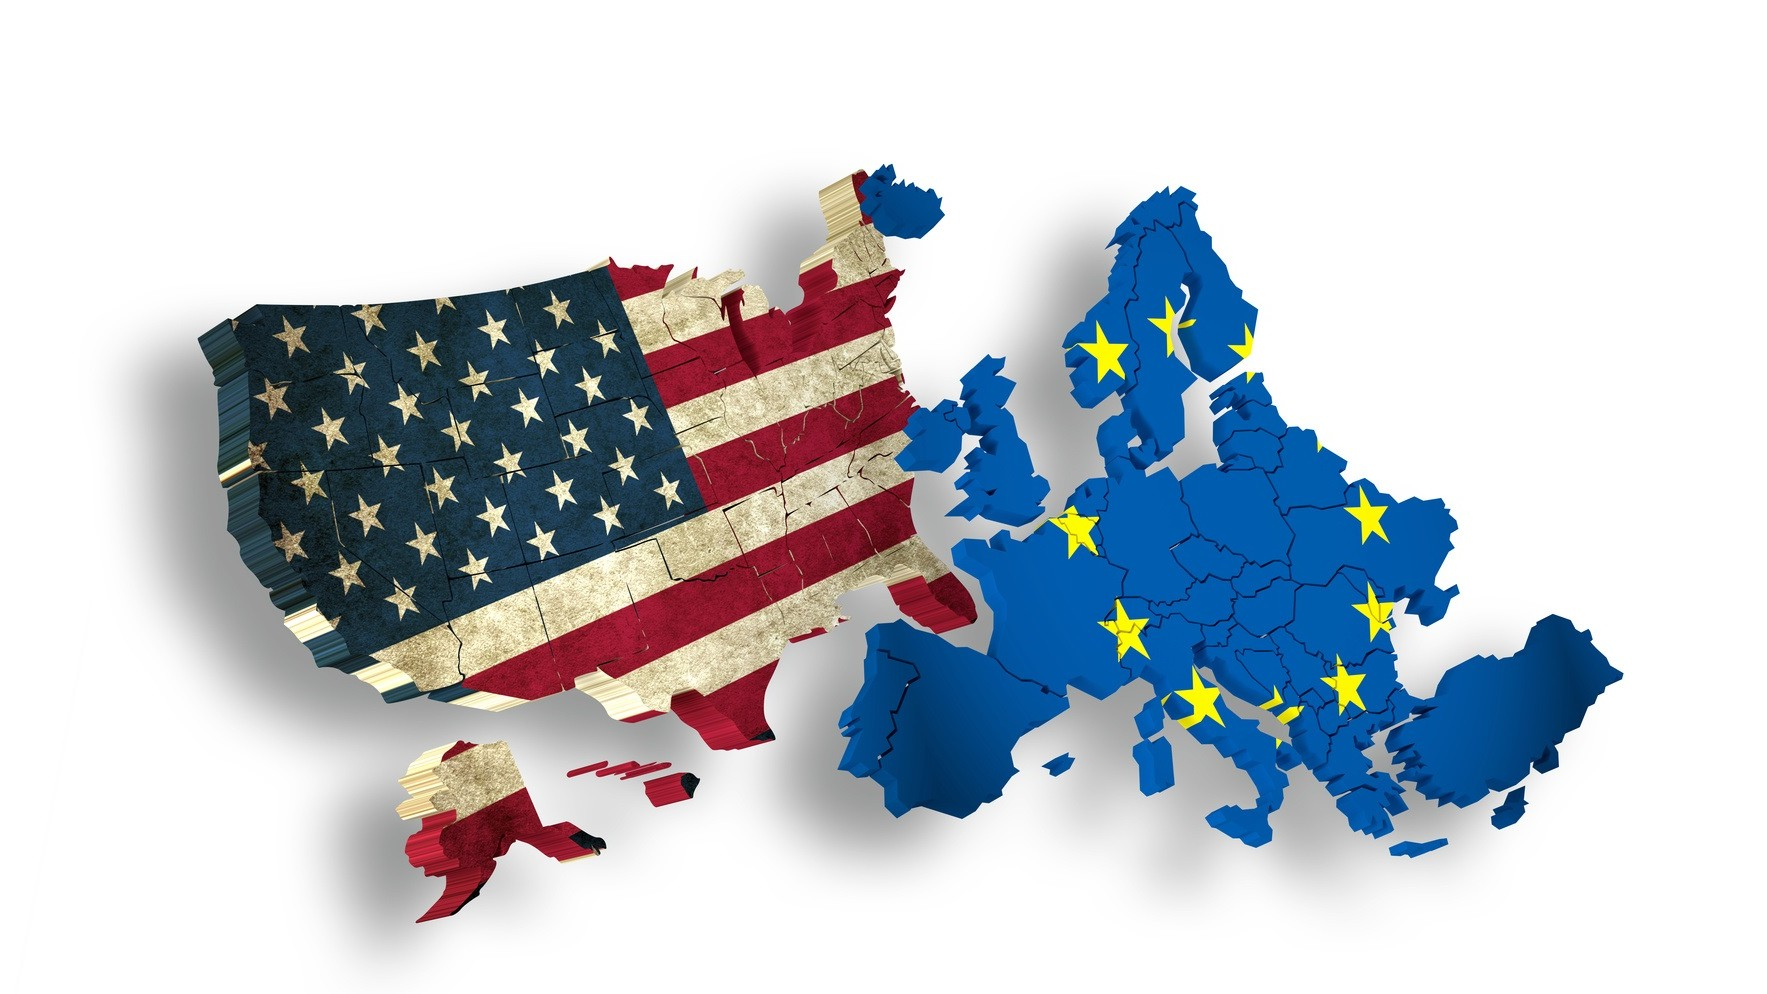 USA and EUROPE / EU – Symbol for TTIP